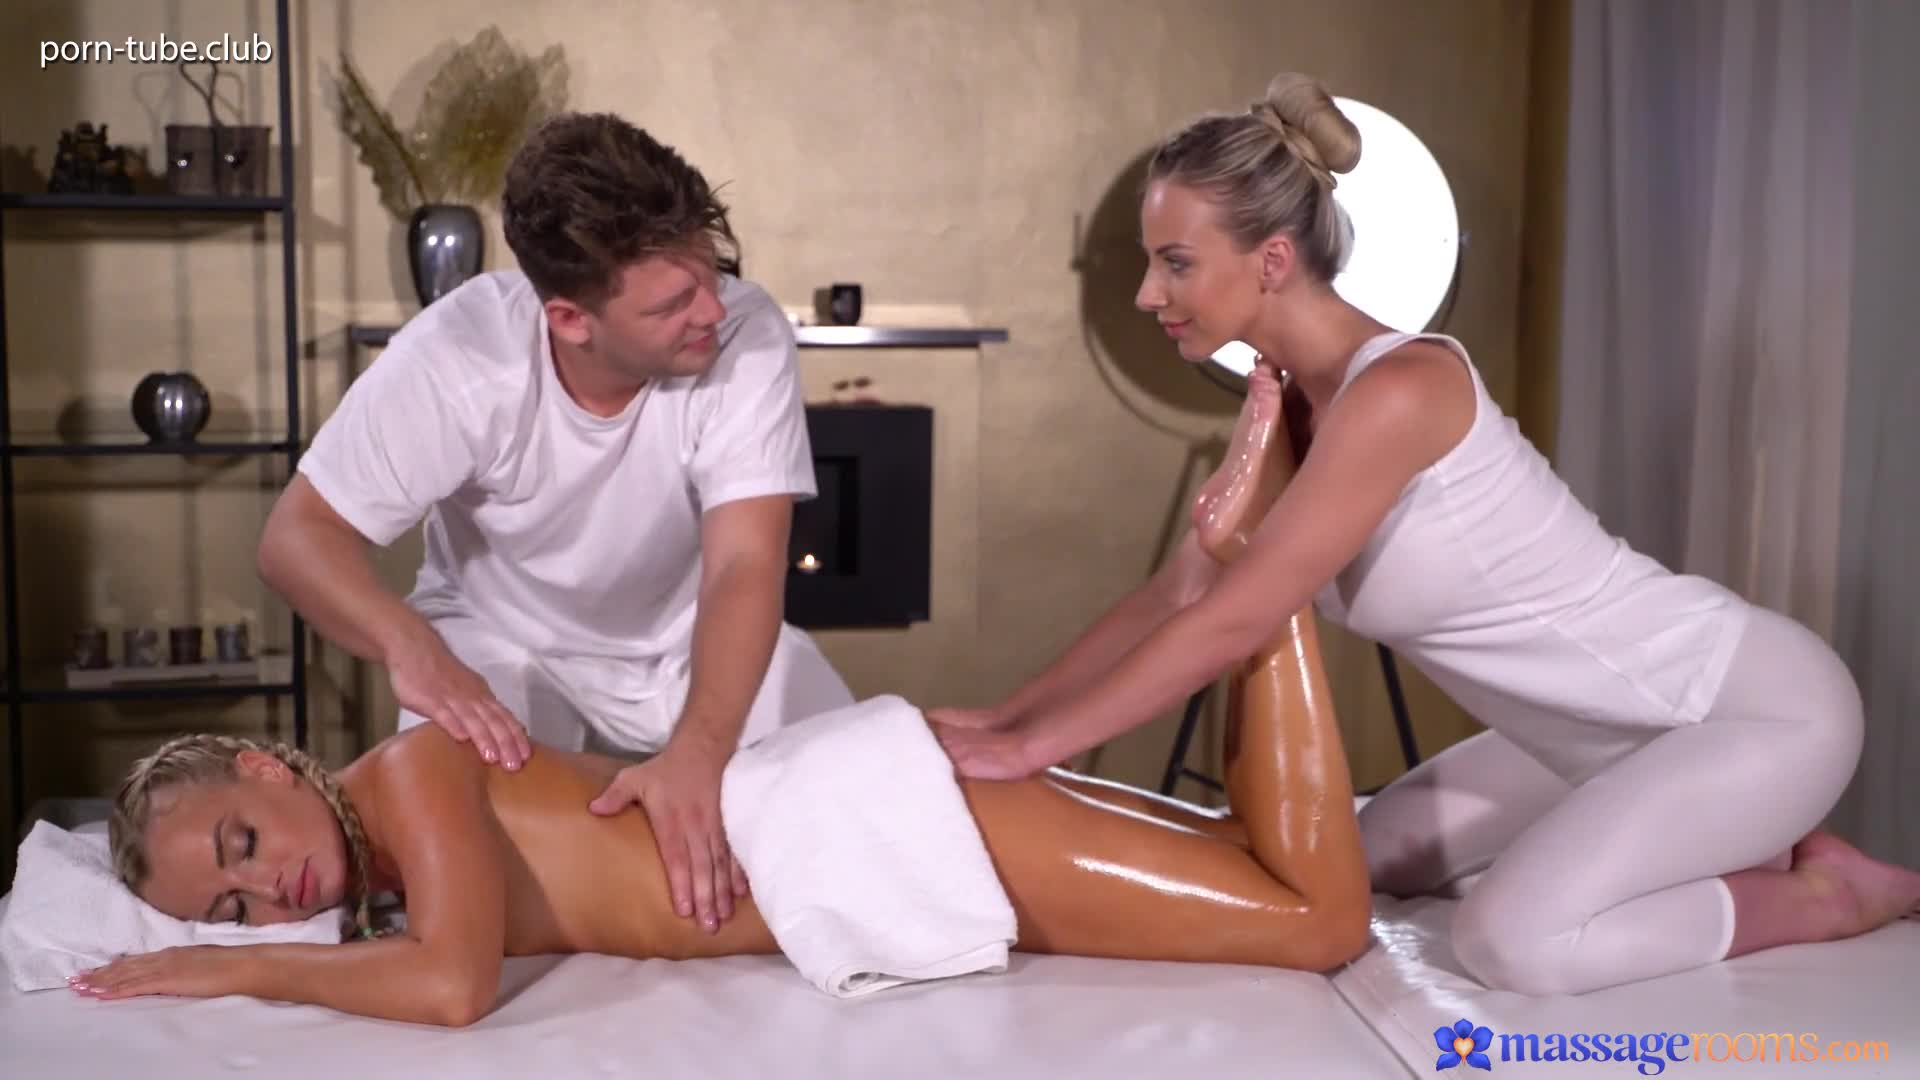 MassageRooms 18.07.18 Nathaly Cherie And Victoria Pure